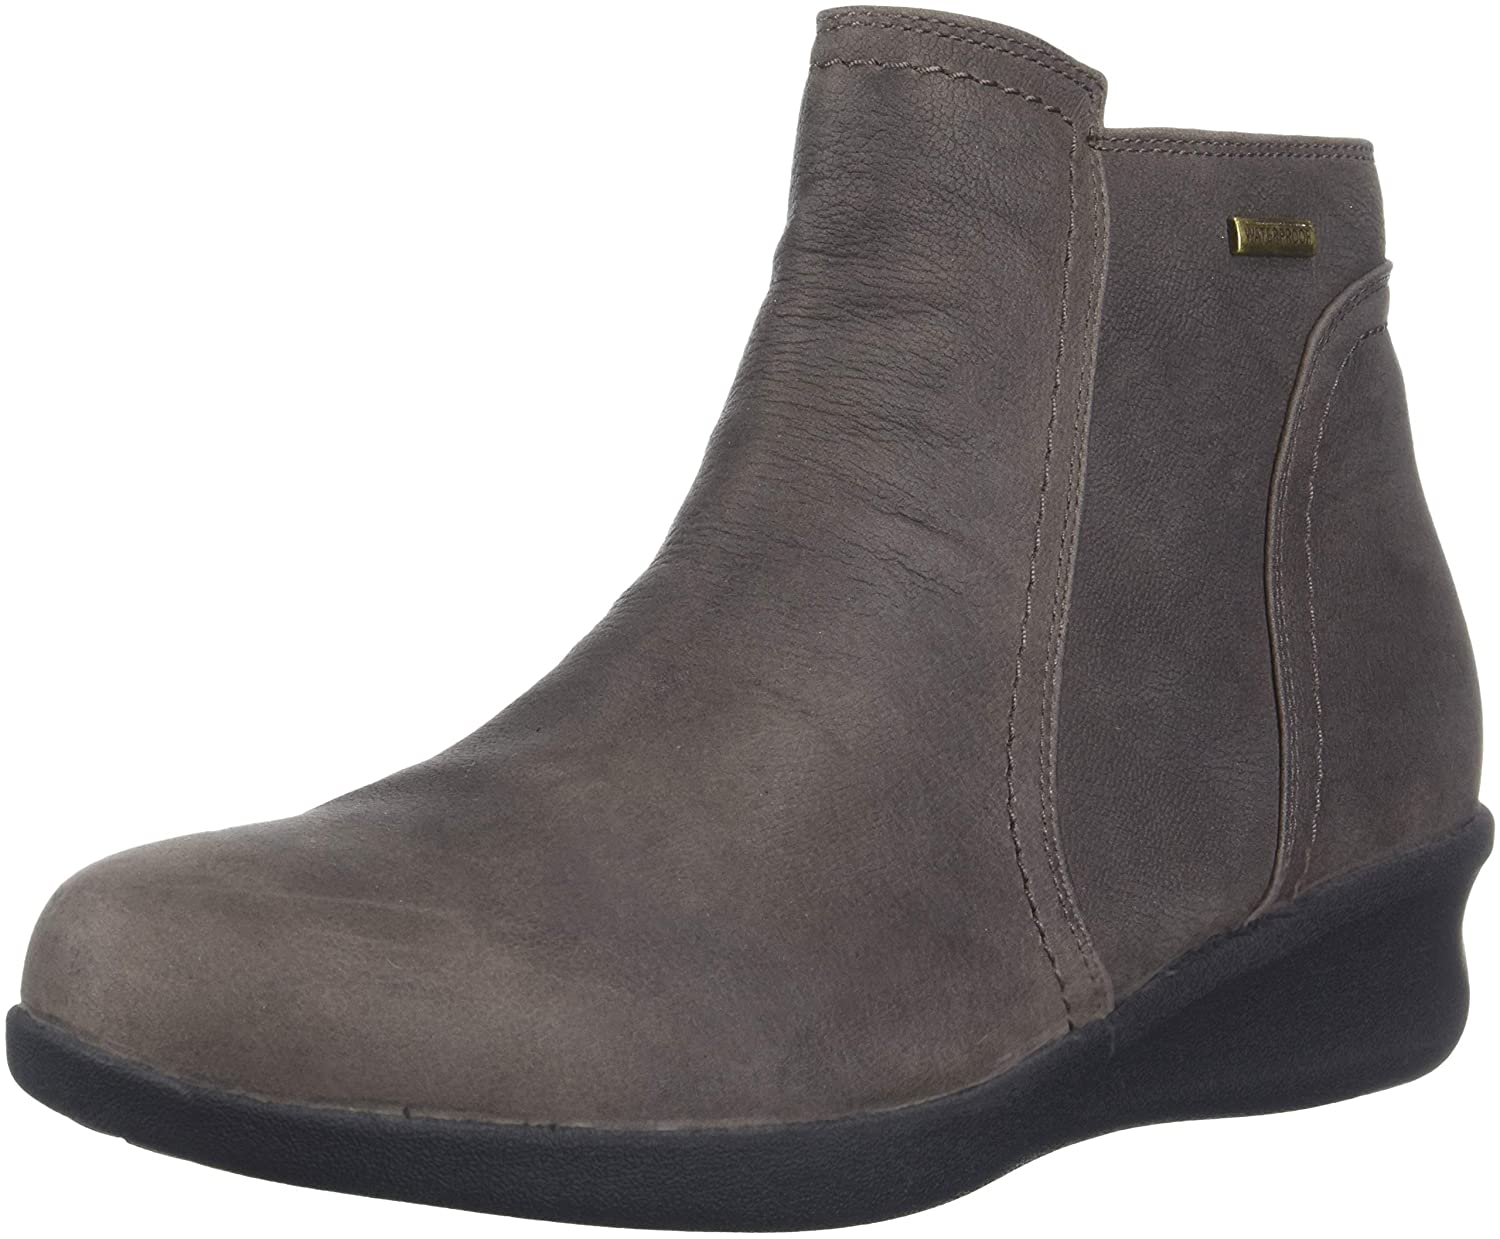 Warm Iron Aravon Womens Fairlee Ankle Boot Ankle Boot